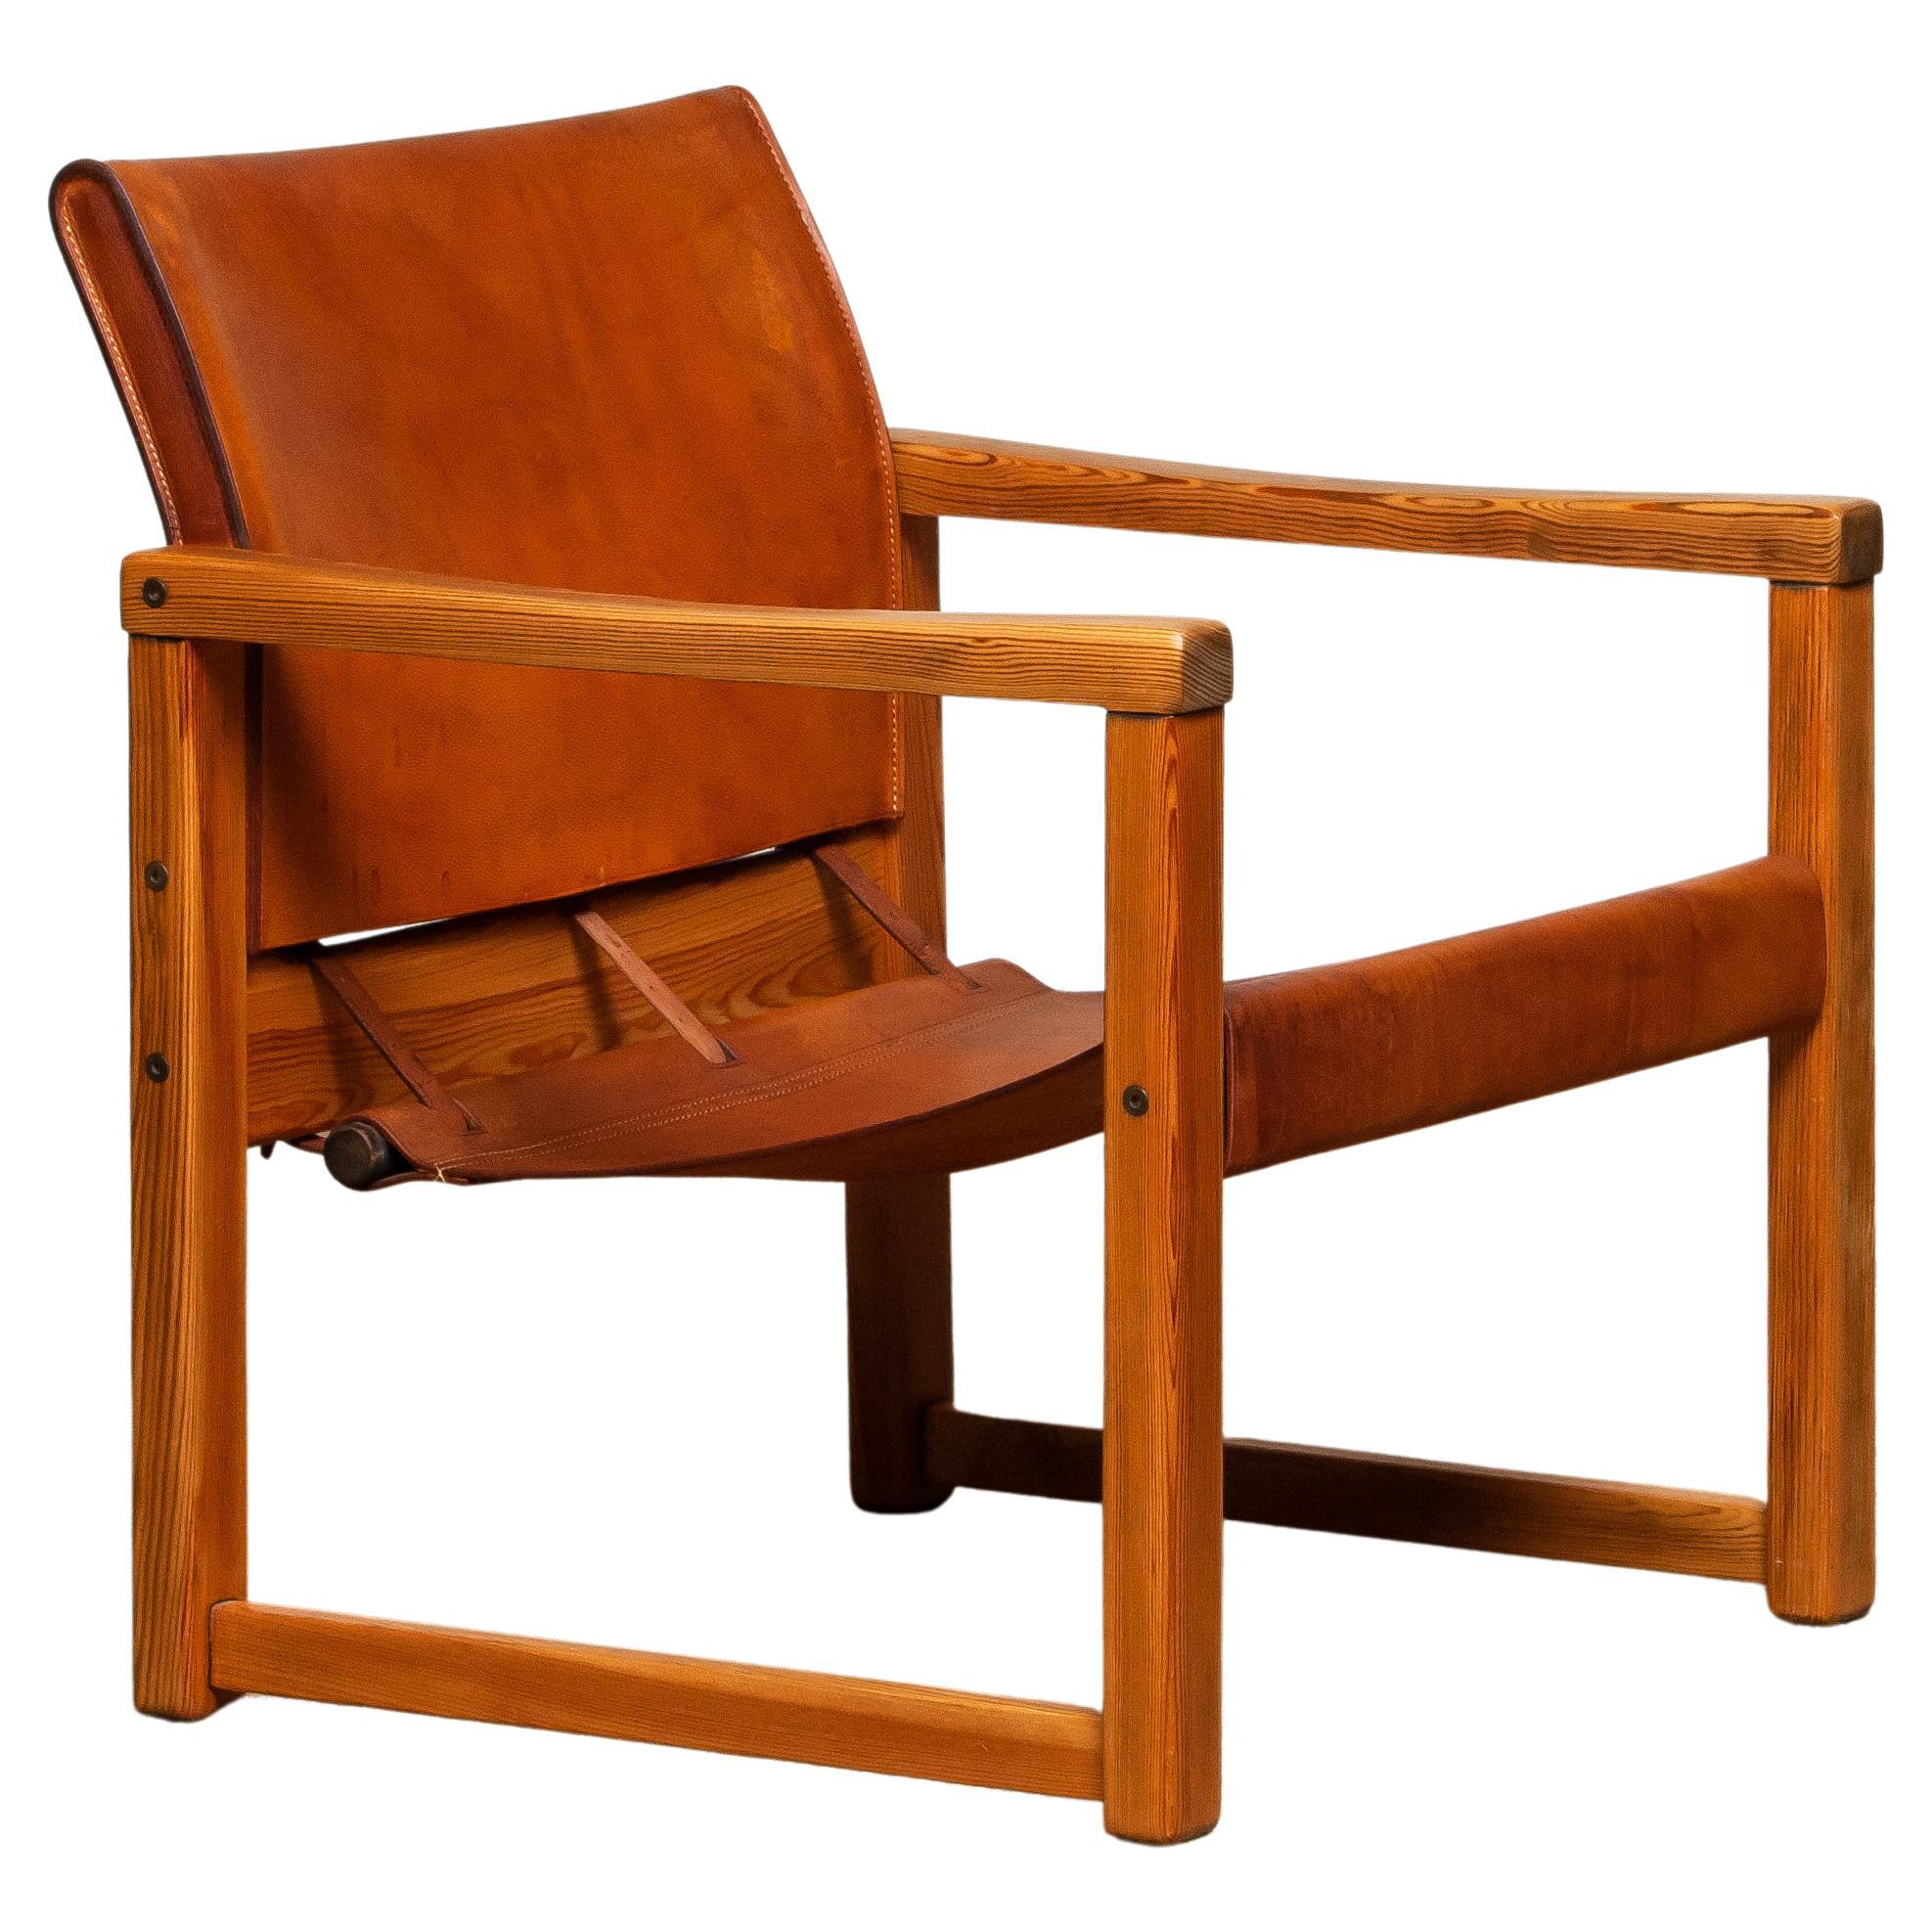 Cognac Leather Karin Mobring Safari Chair Model Diana by Ikea in Sweden, 1970s